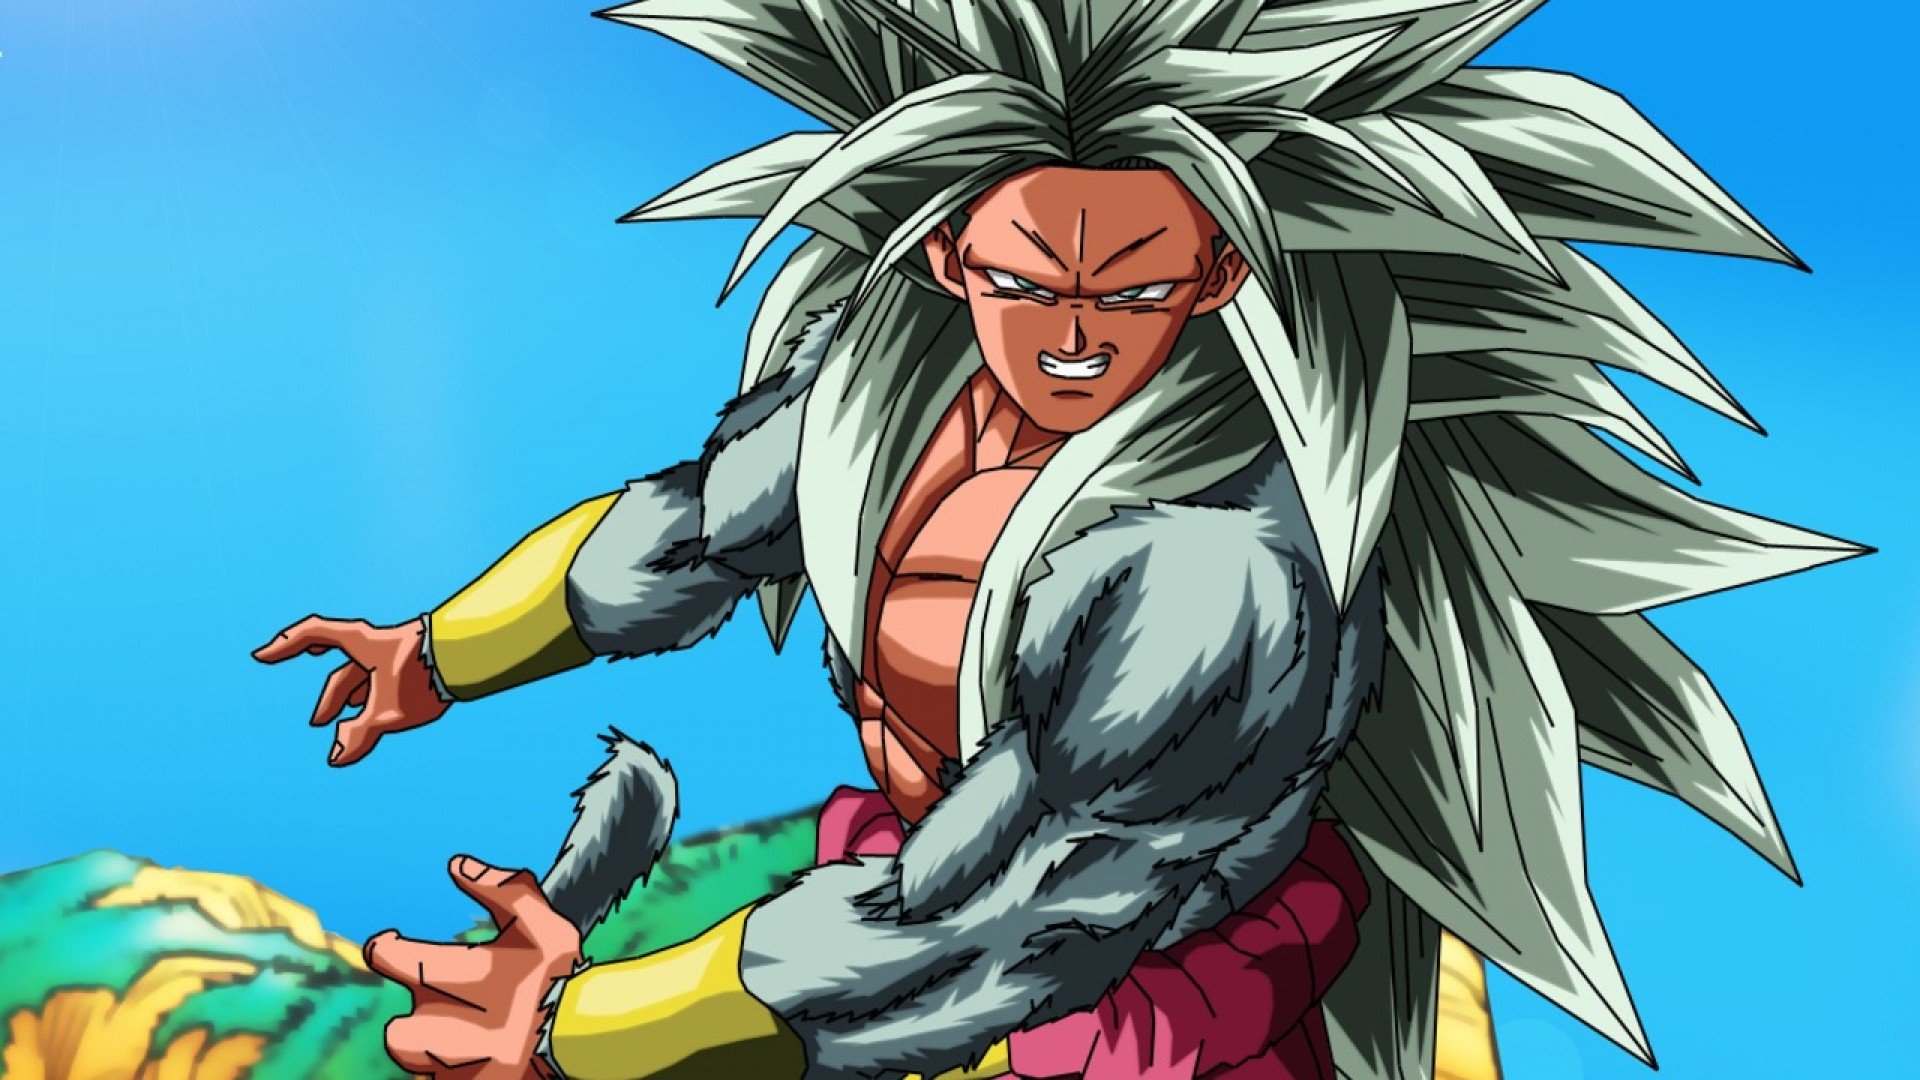 Dragon Ball Z Broly Background For Free Wallpaper PIC MCH060670